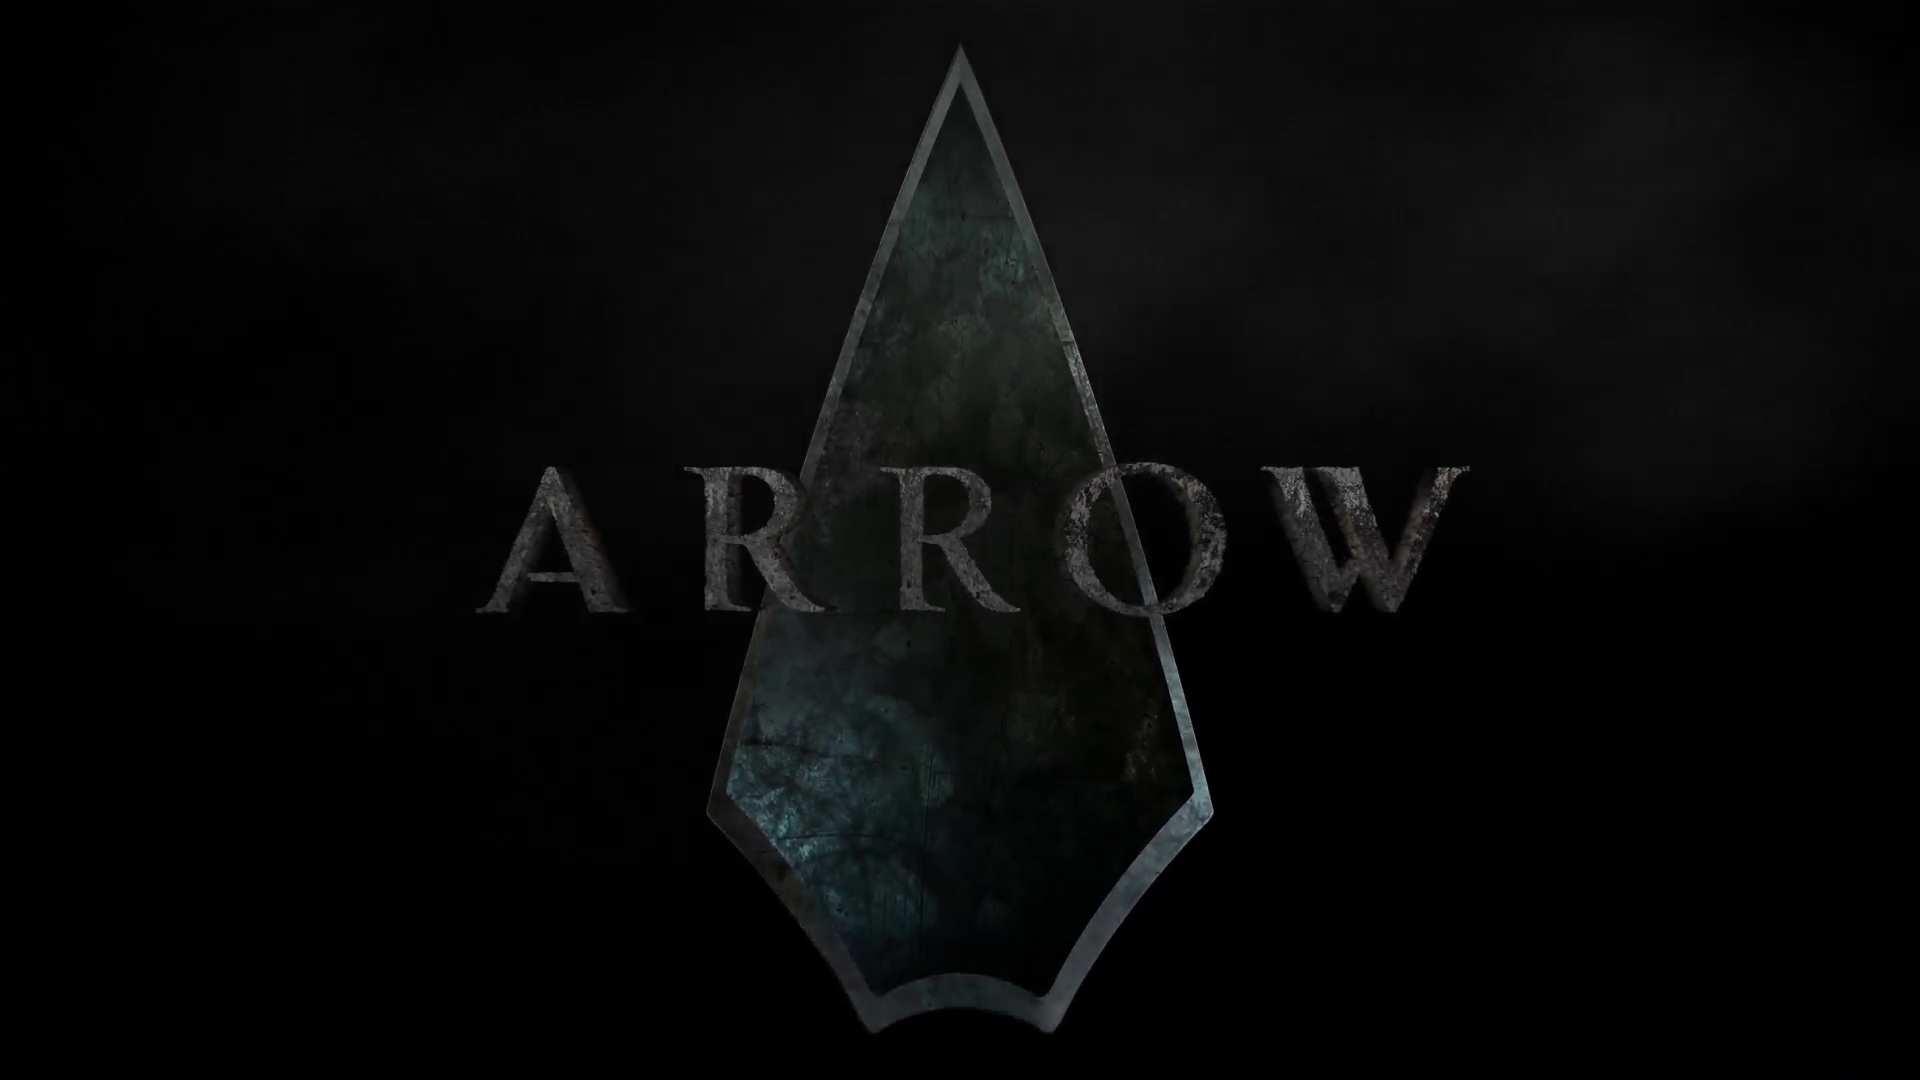 Arrow wallpaper 2